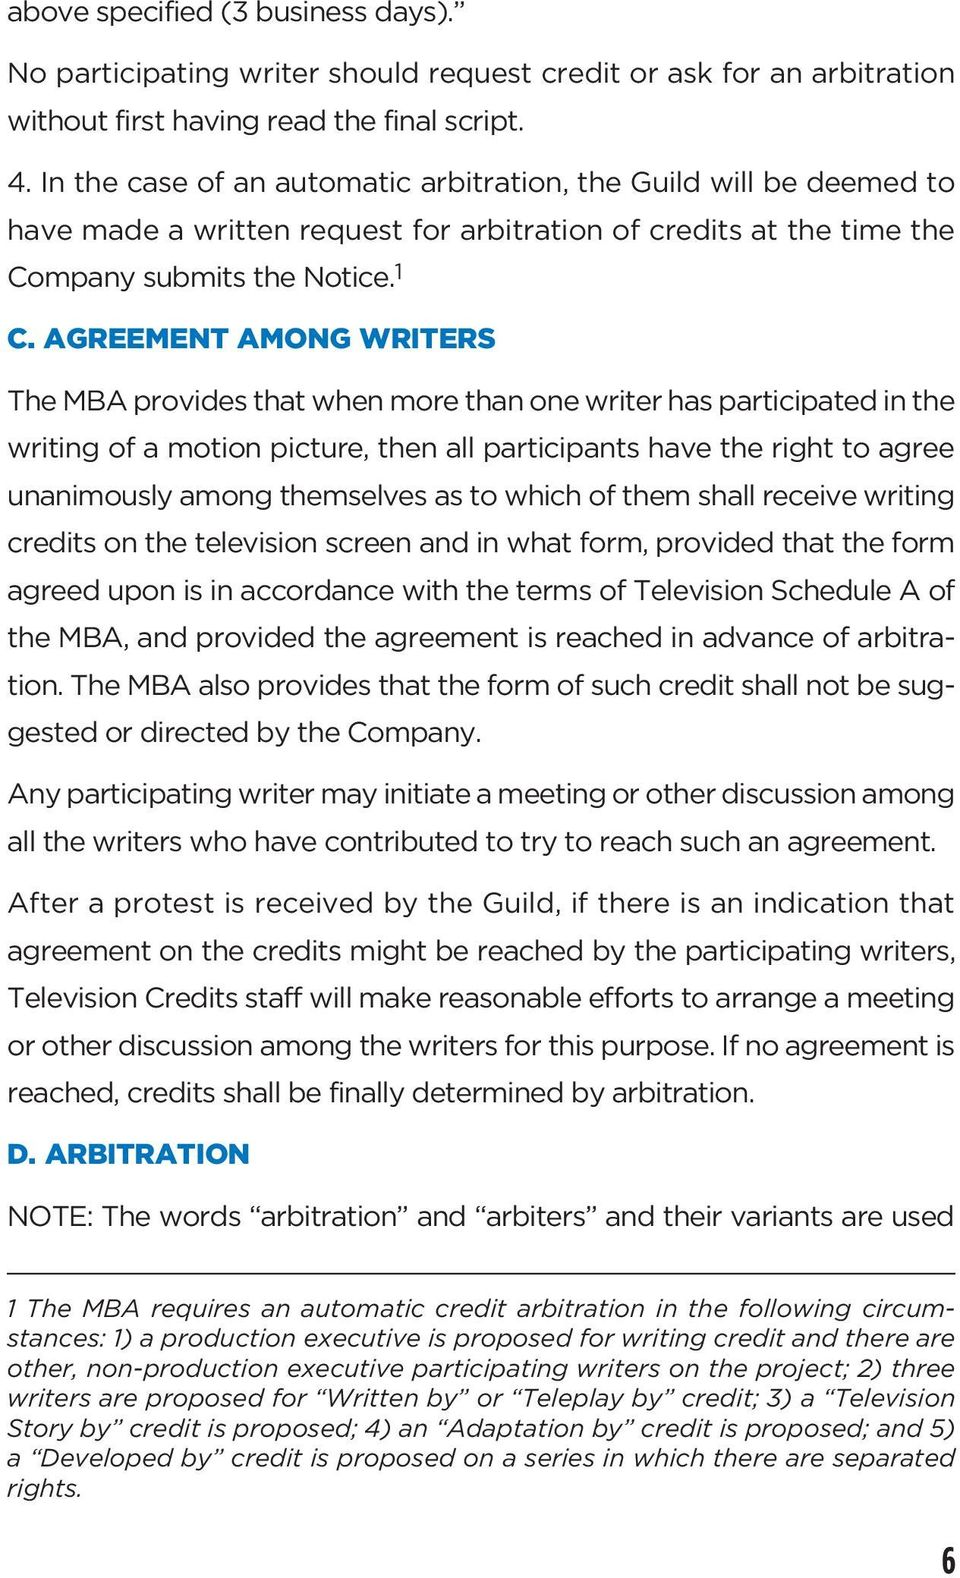 AGREEMENT AMONG WRITERS The MBA provides that when more than one writer has participated in the writing of a motion picture, then all participants have the right to agree unanimously among themselves